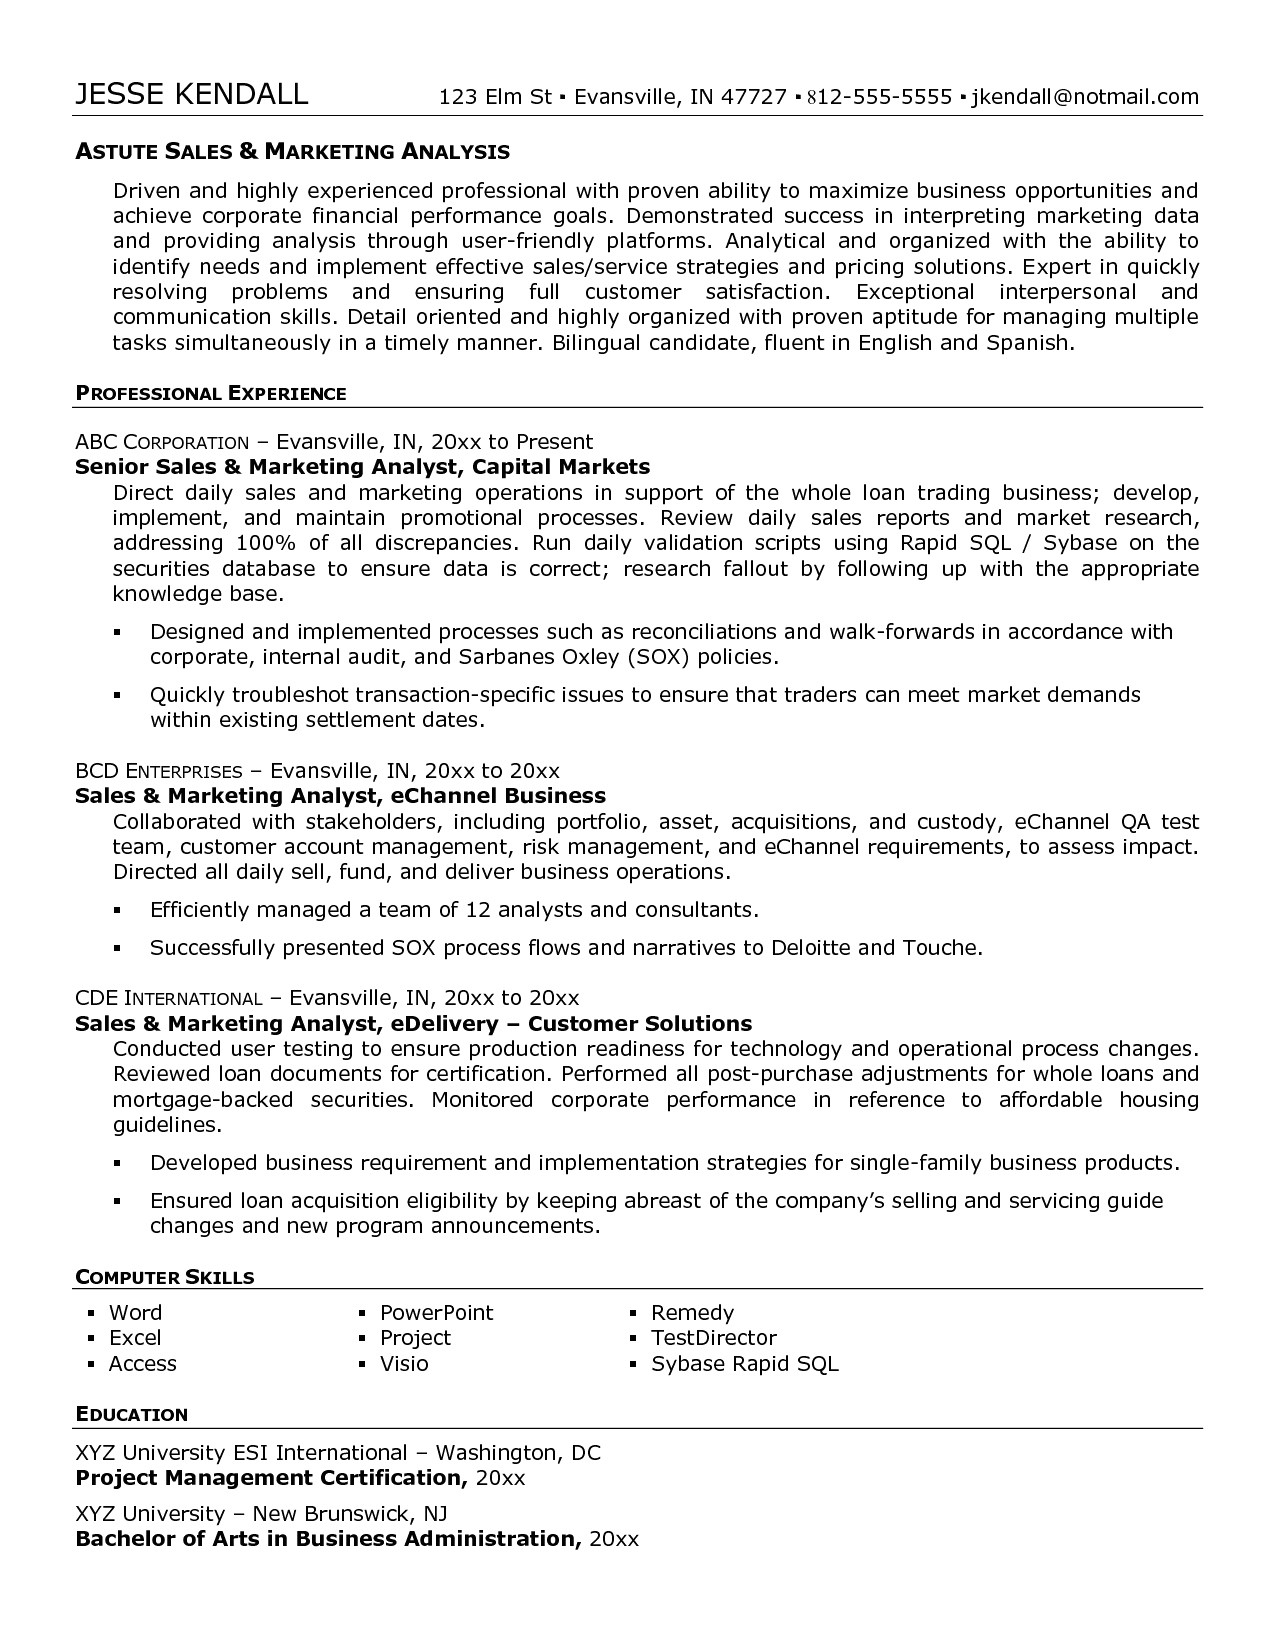 Test Manager Resume Template 12 Unique Test Manager Sample Resume Resume Sample Ideas